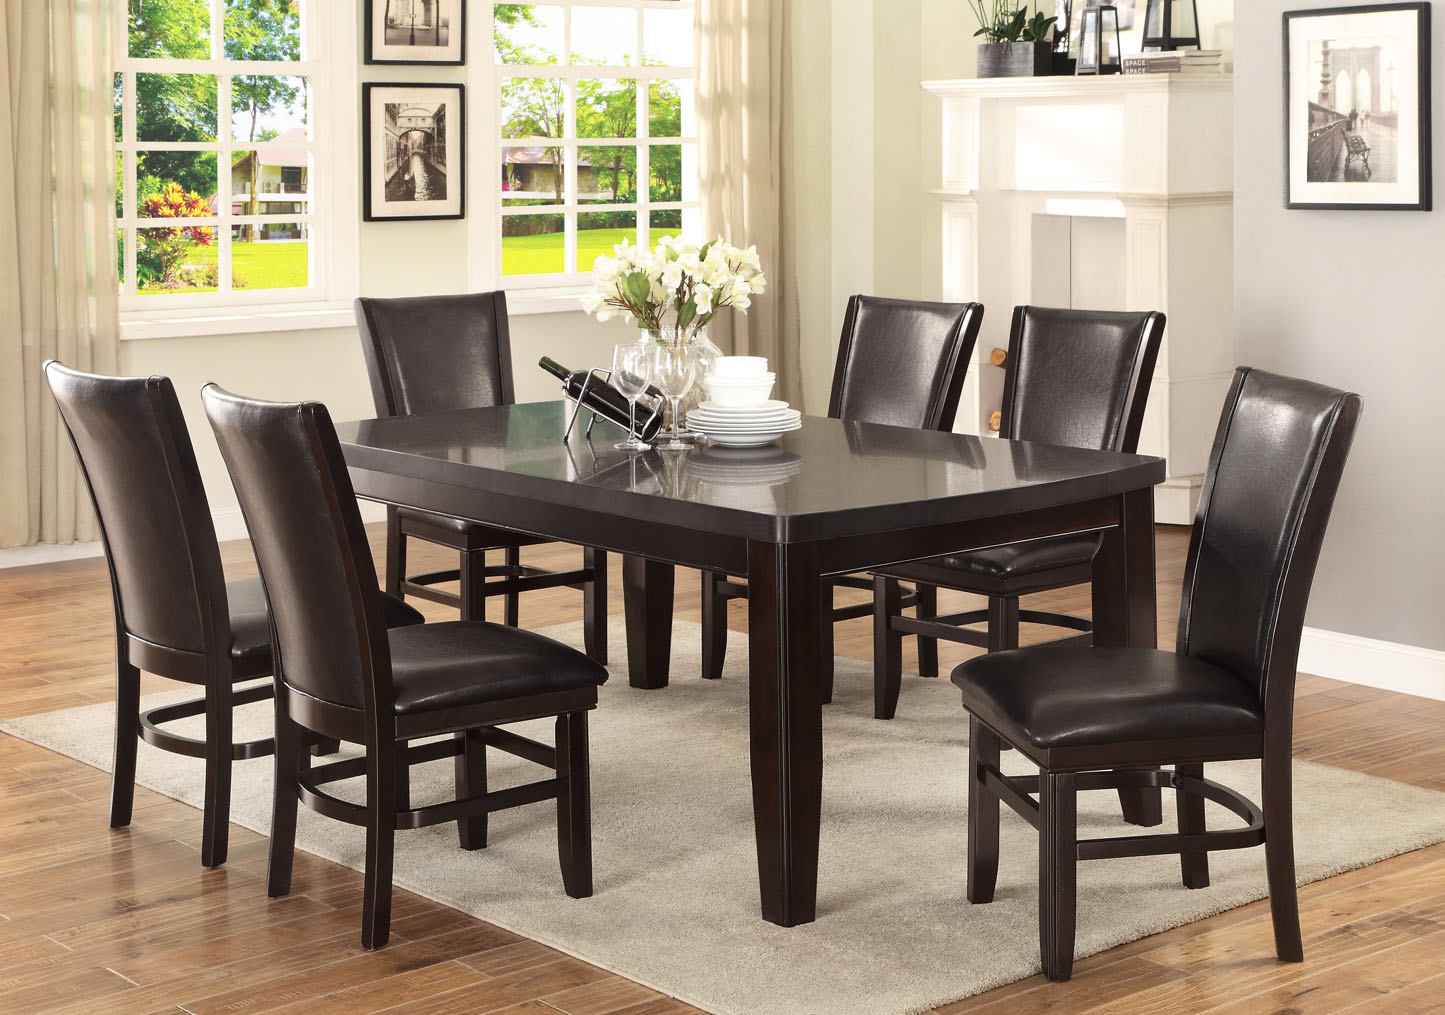 Marble dining table beach dining room sets ideas round for 10 seater marble dining table